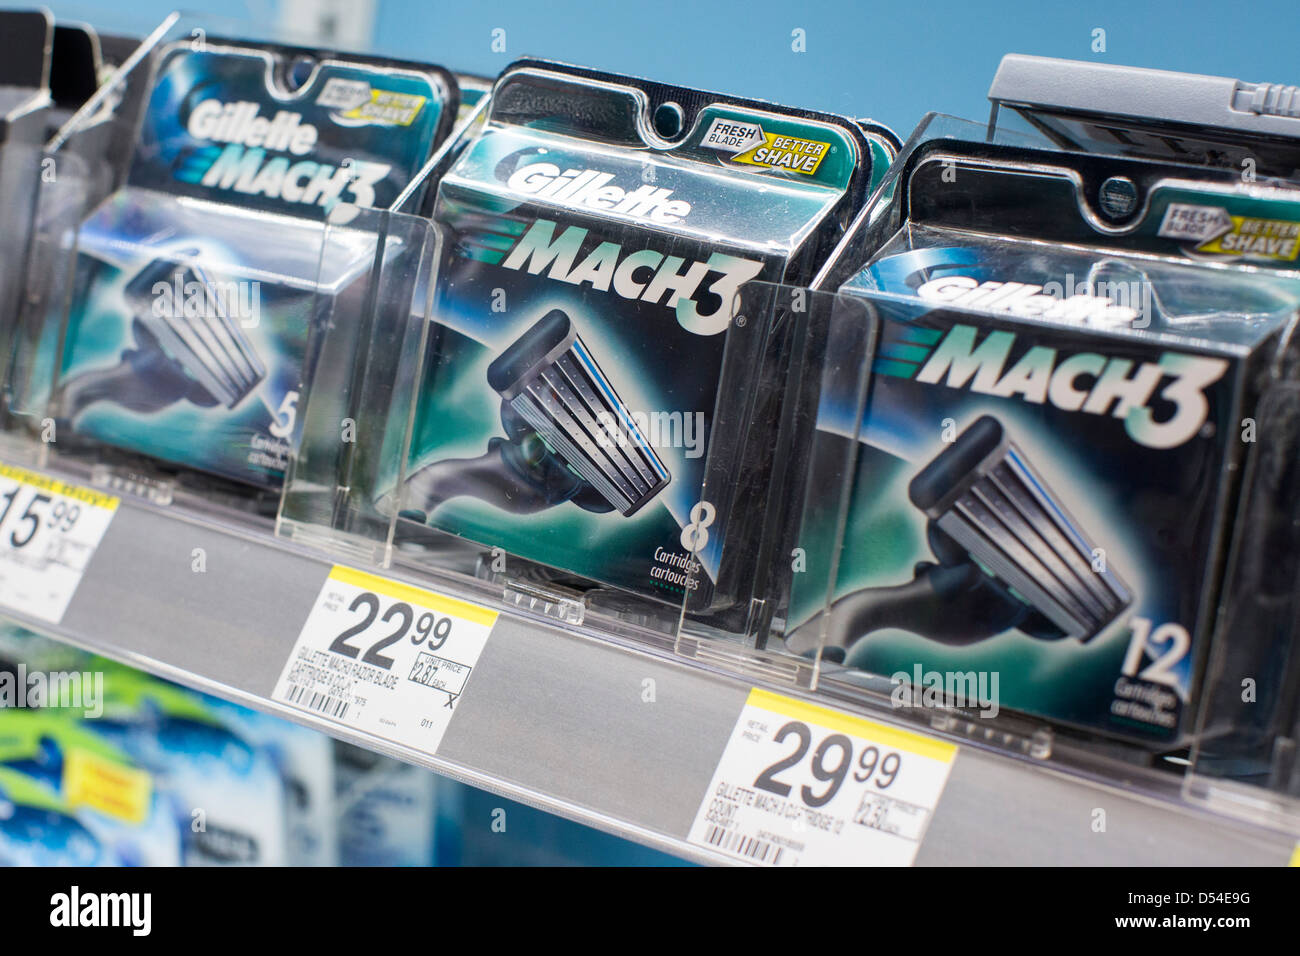 Gillette shaving products on display at a Walgreens Flagship store. - Stock Image